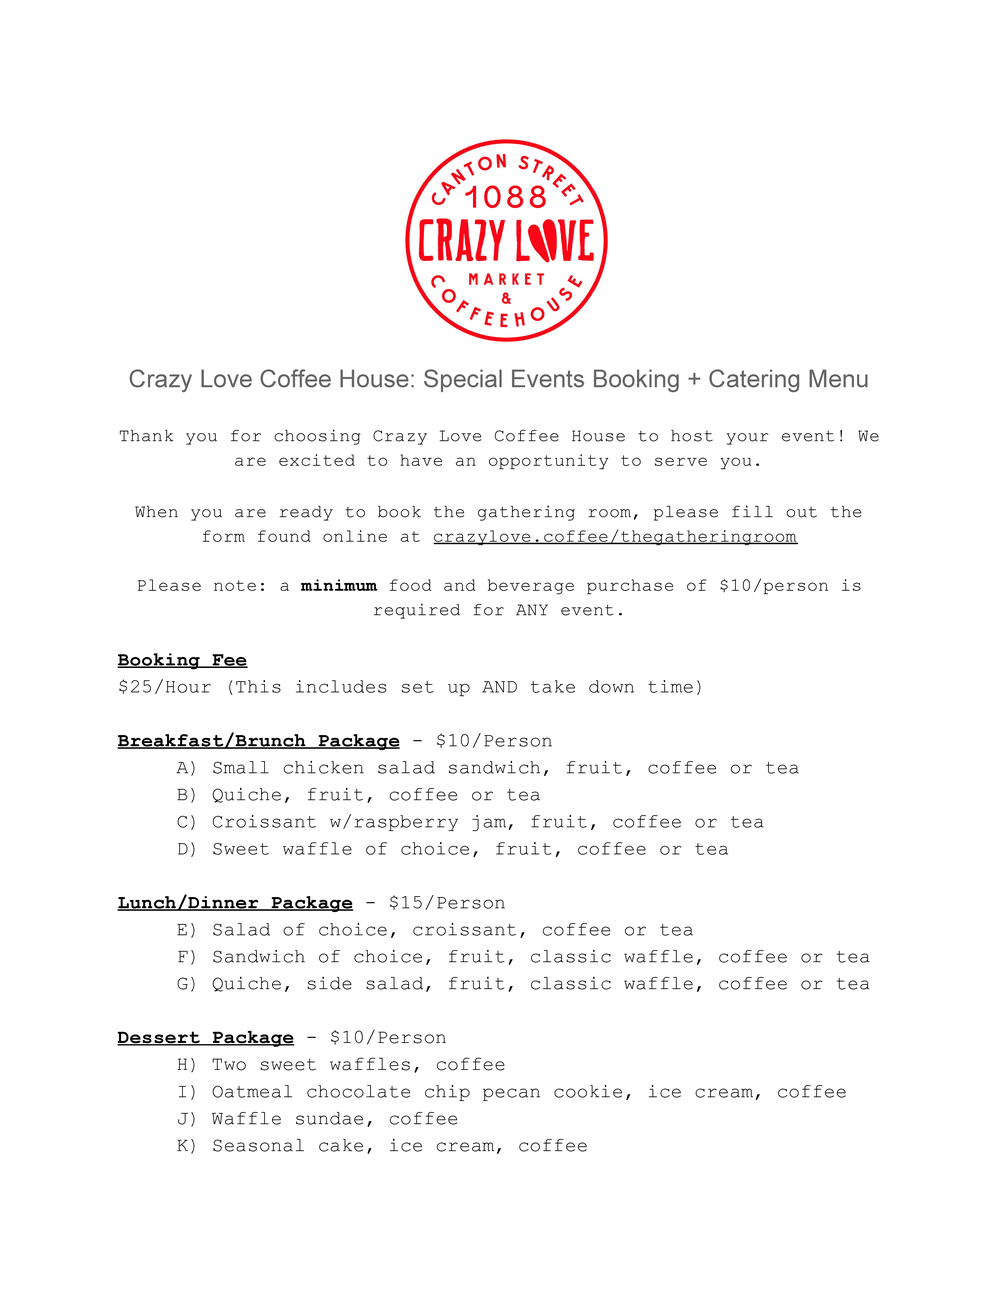 UPDATED-Crazy Love Special Events Menu_Page_1.png